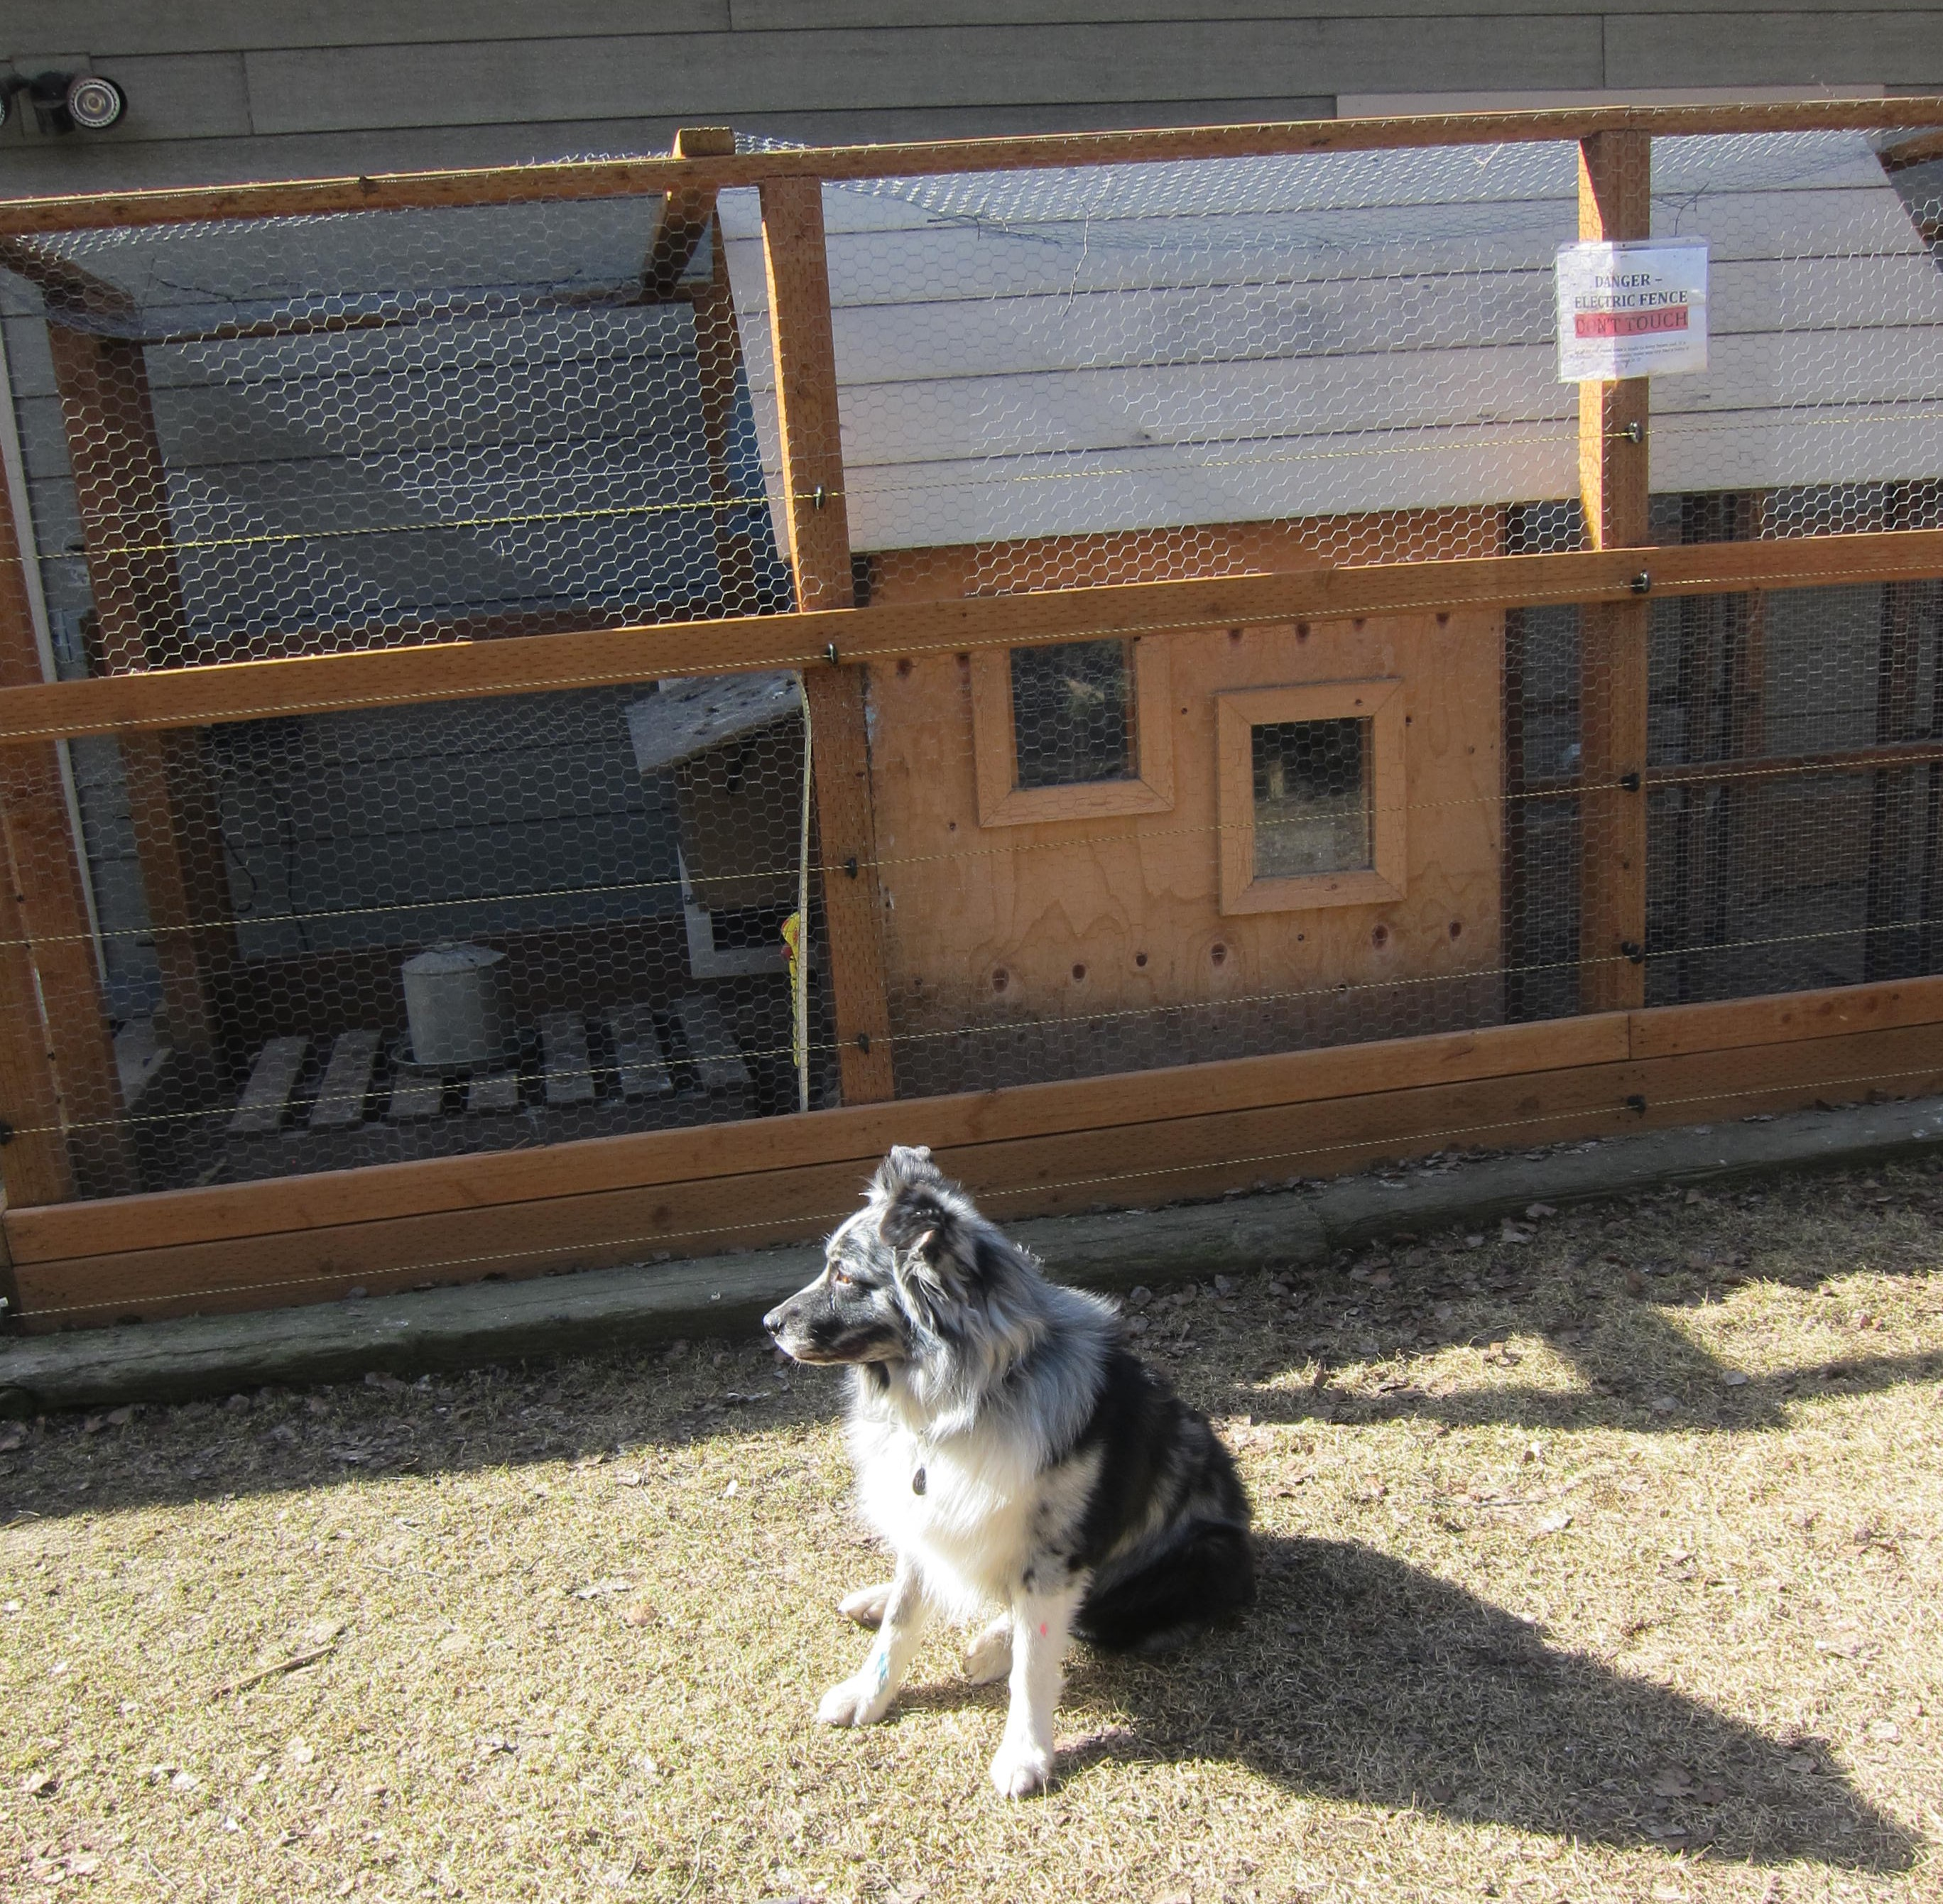 Austrailian Sheppard in front of chicken coop